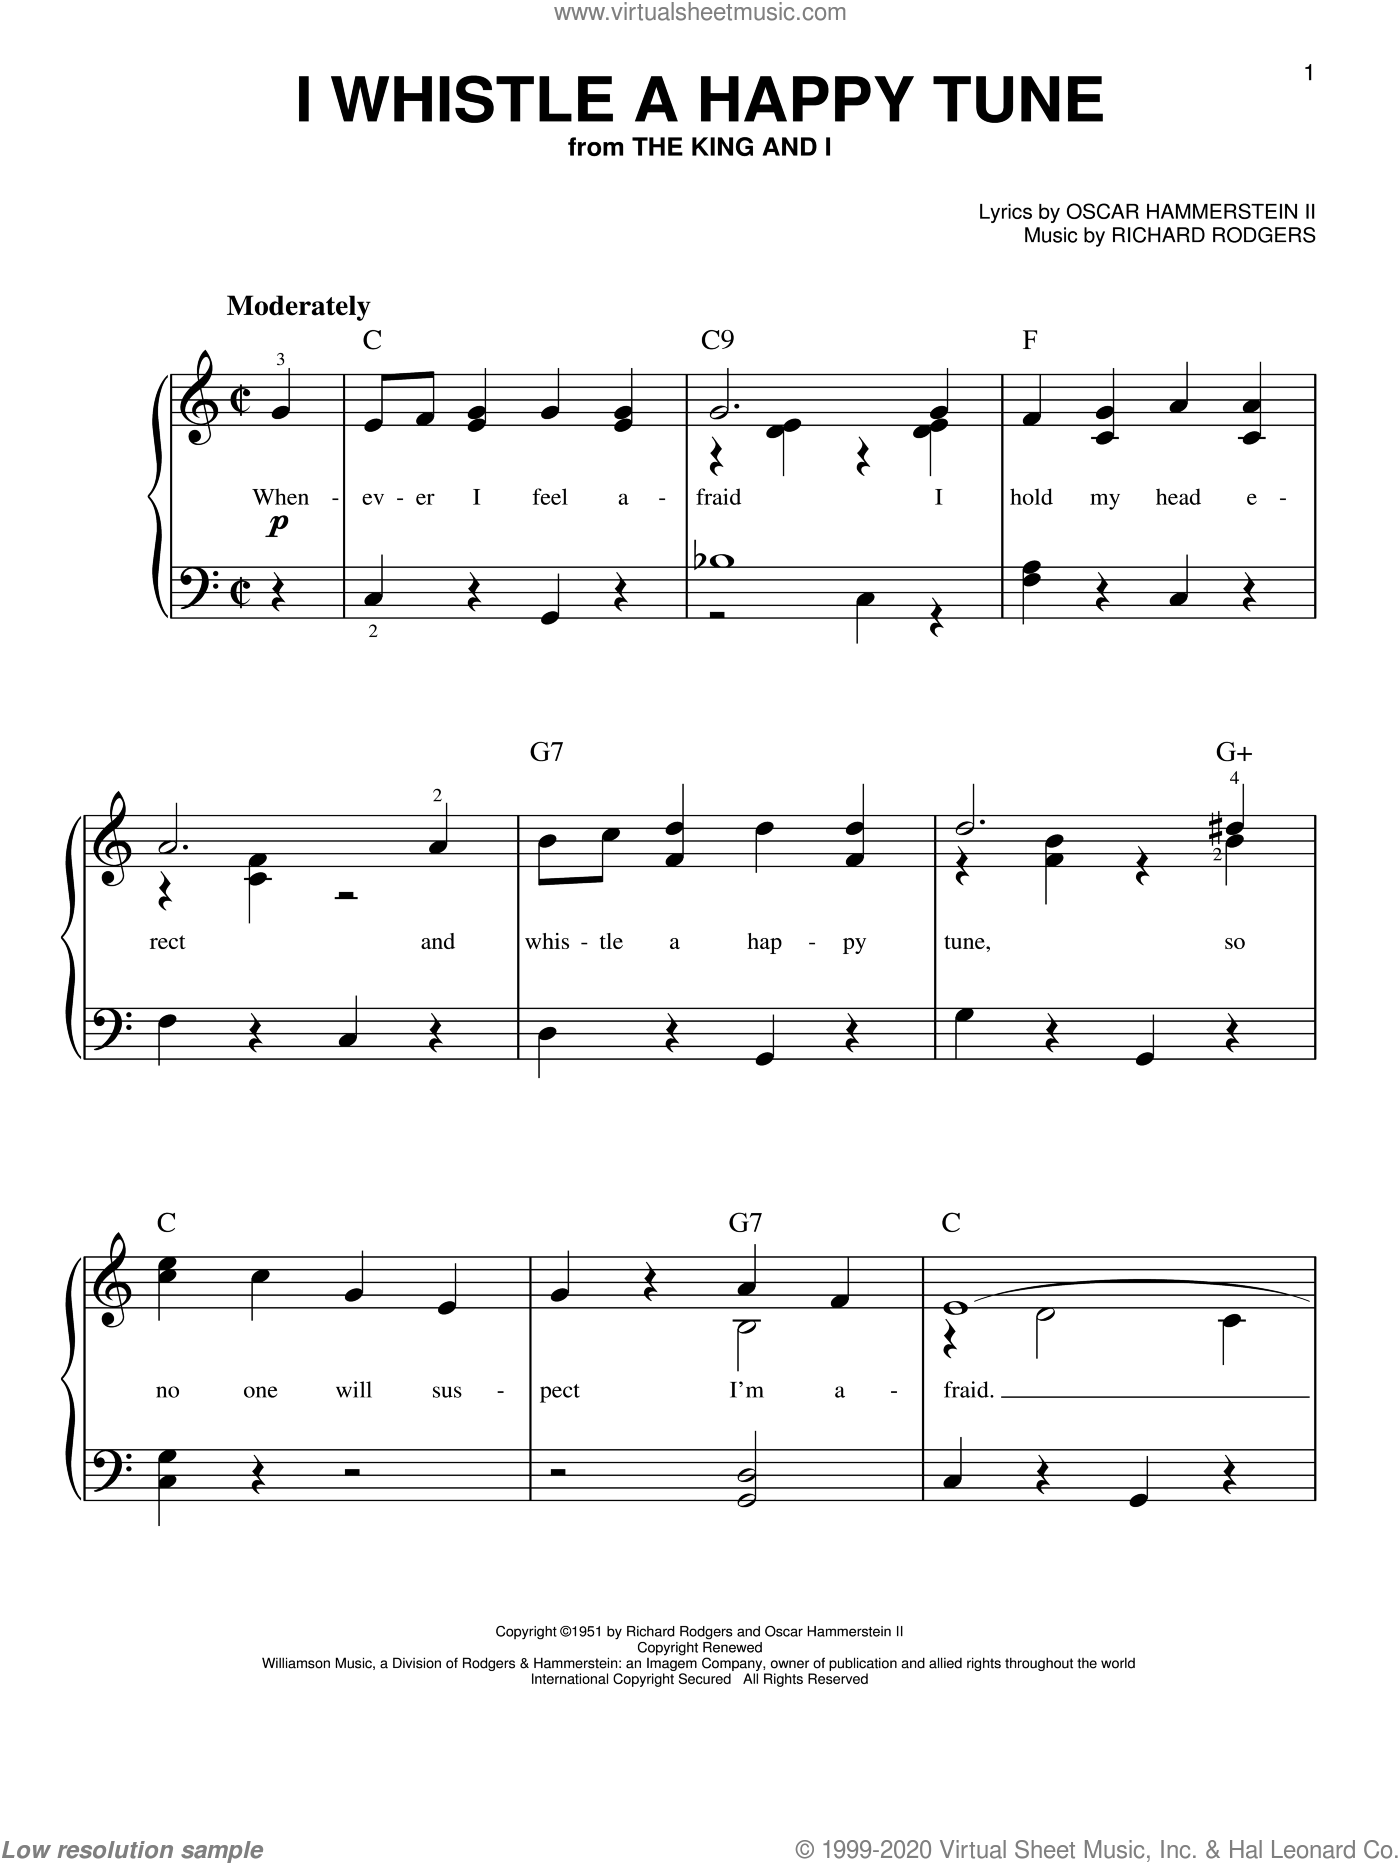 I Whistle A Happy Tune sheet music for piano solo (chords) by Richard Rodgers